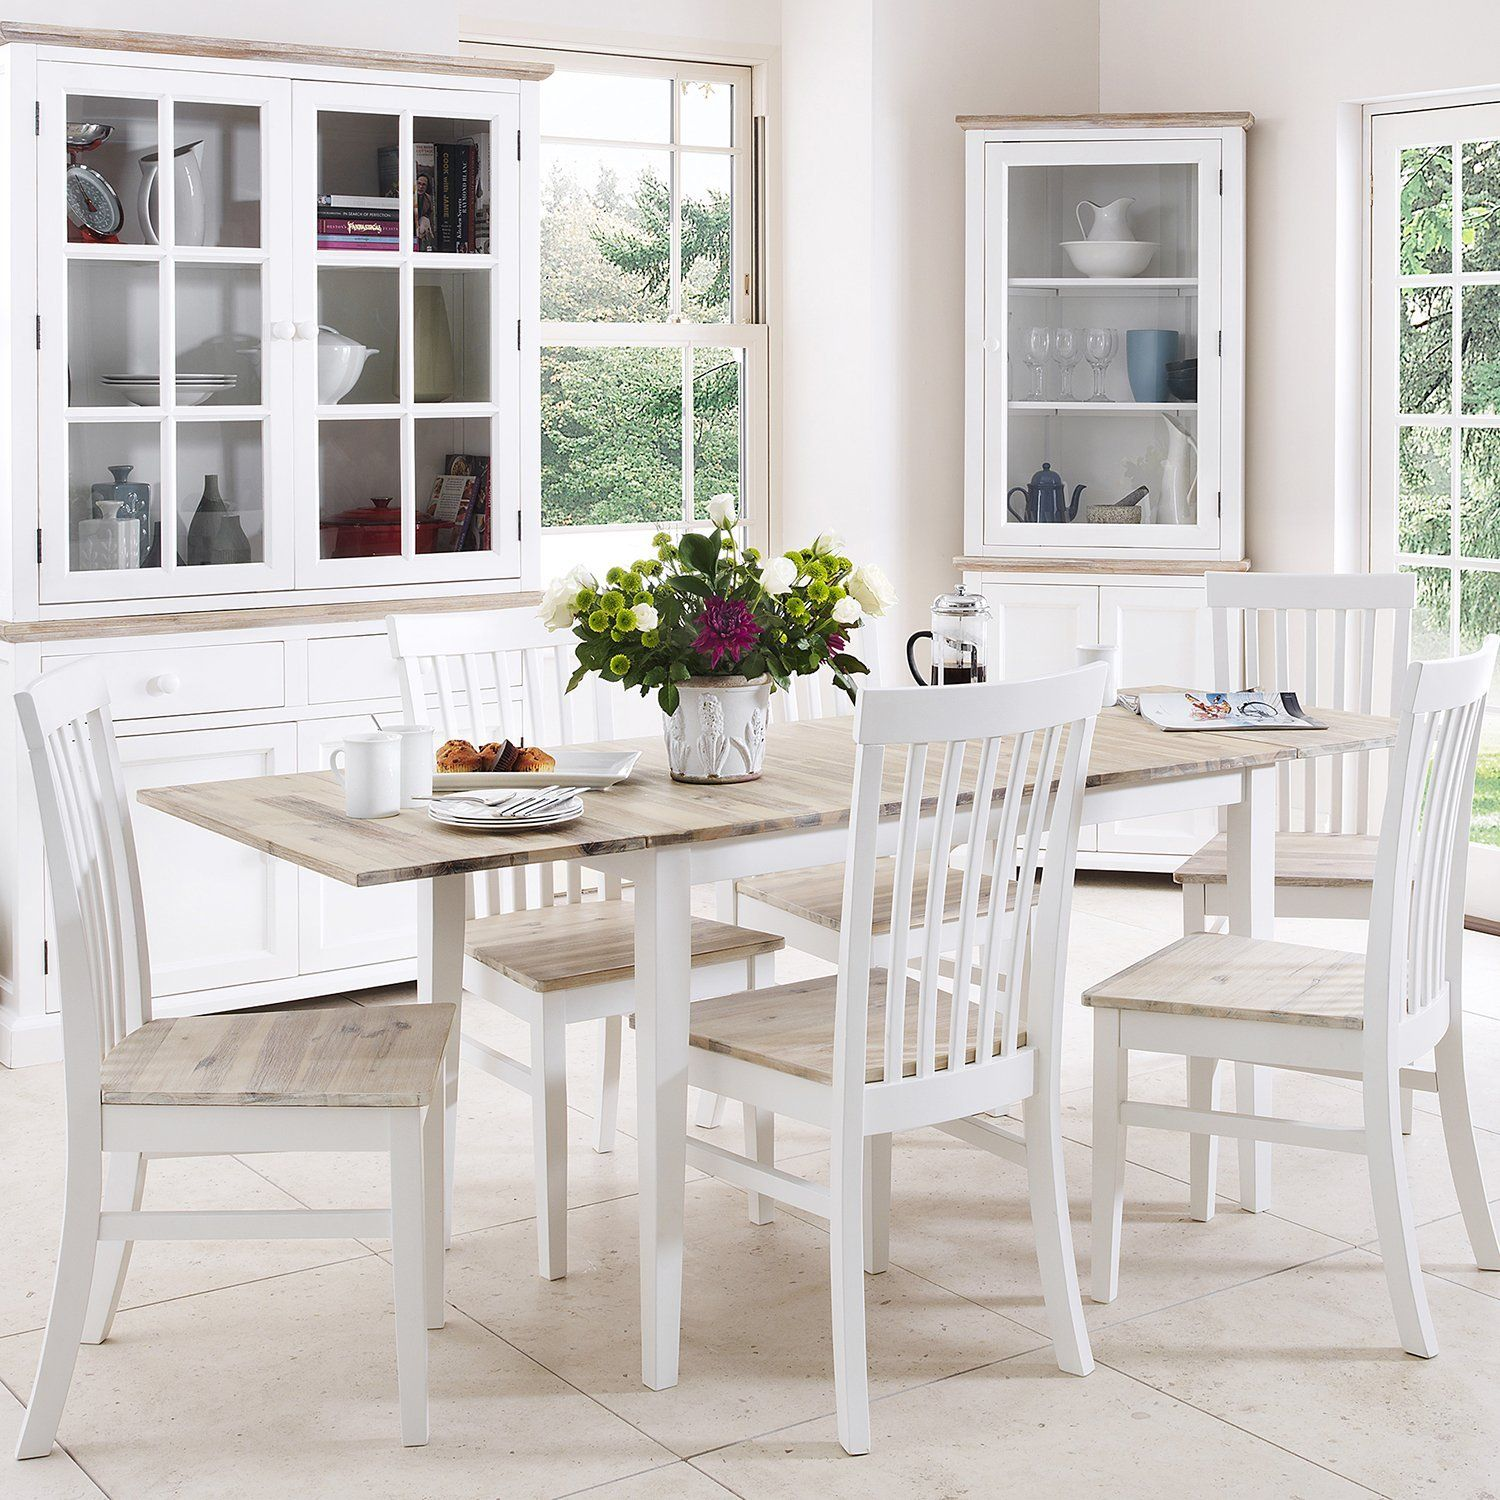 amazon kitchen chairs Florence extending table and 6 chairs set white Amazon co uk